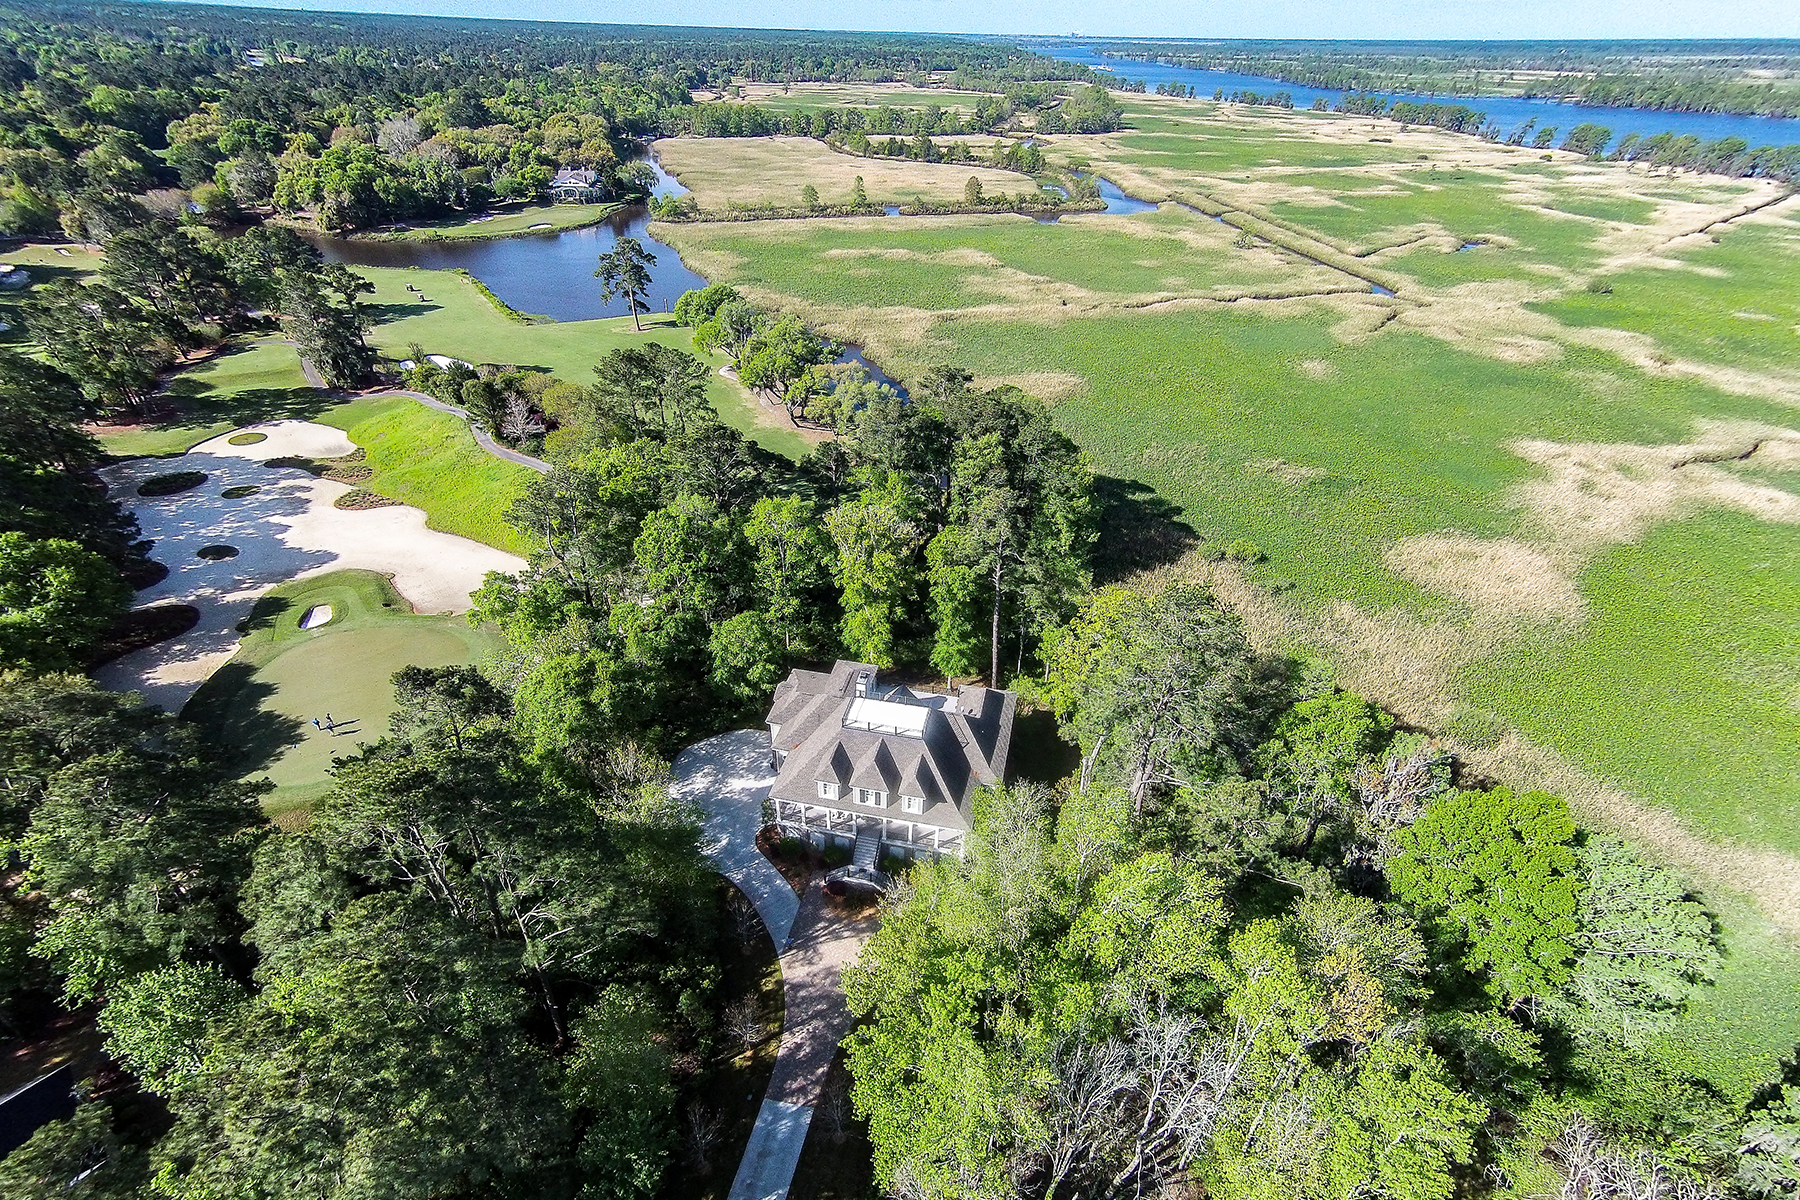 Single Family Home for Sale at 171 Olde Canal Loop Pawleys Island, South Carolina, 29585 United States